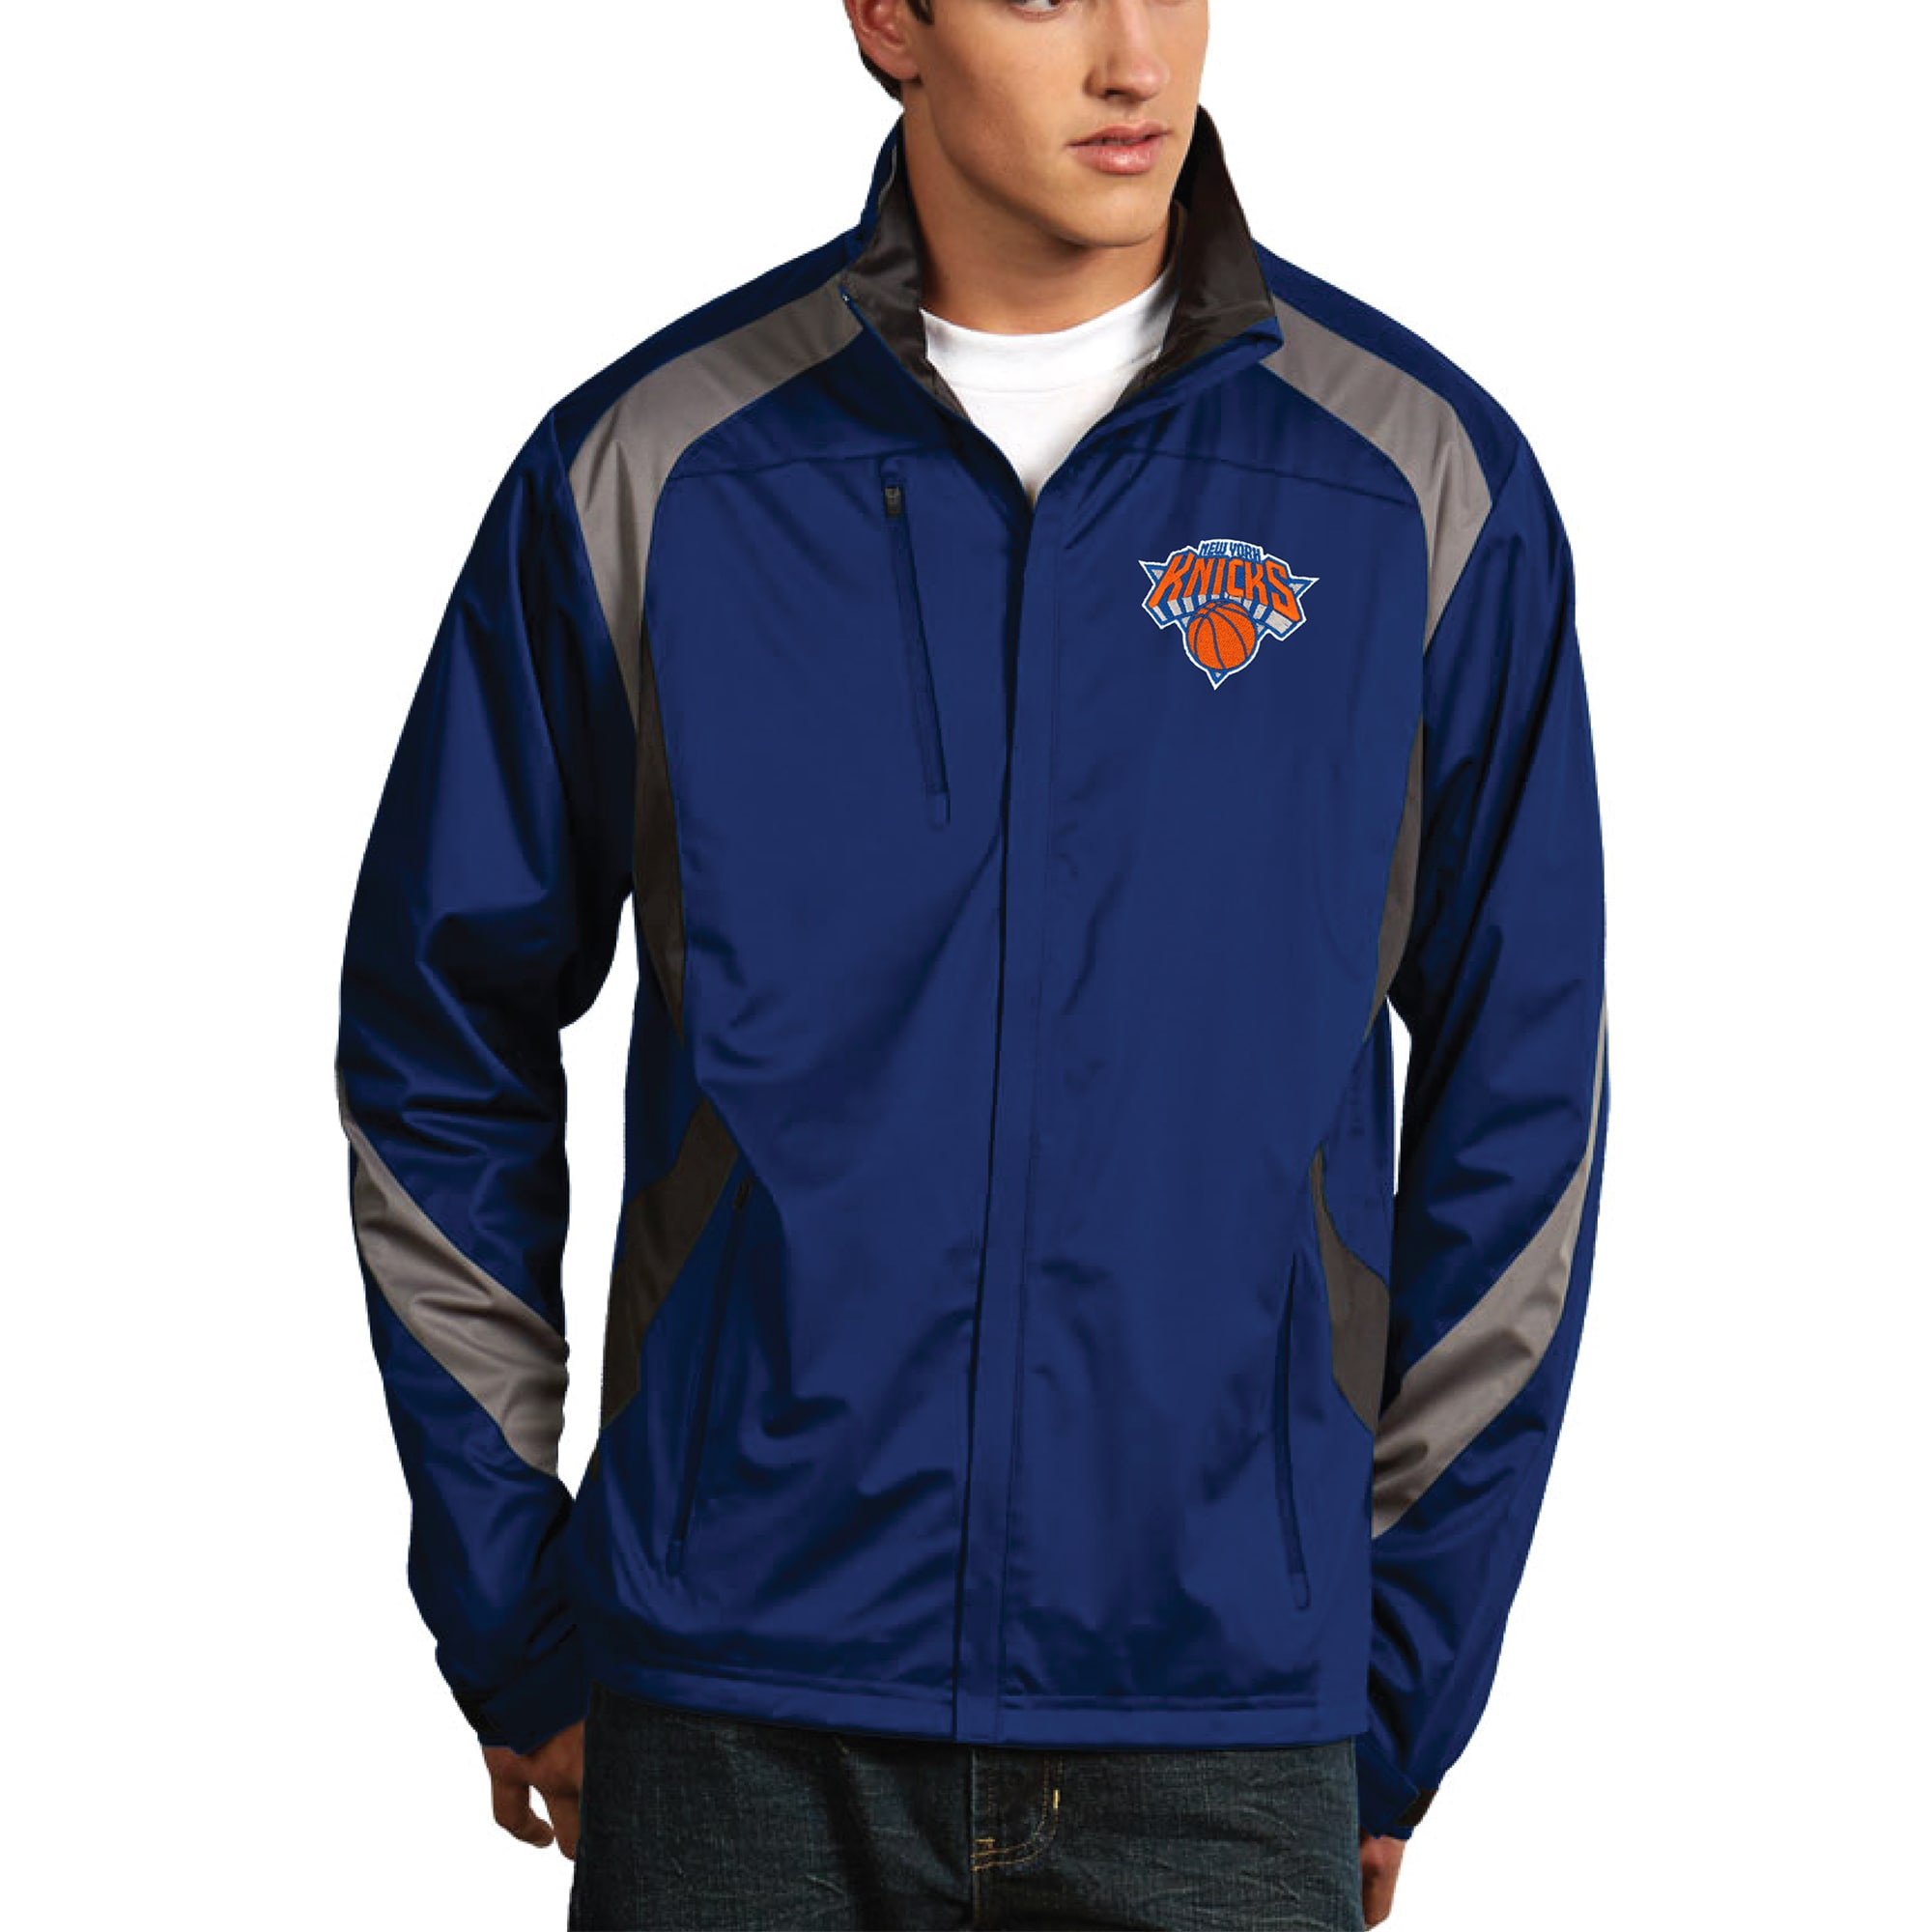 New York Knicks Antigua Tempest Desert Dry Full Zip Jacket - Royal